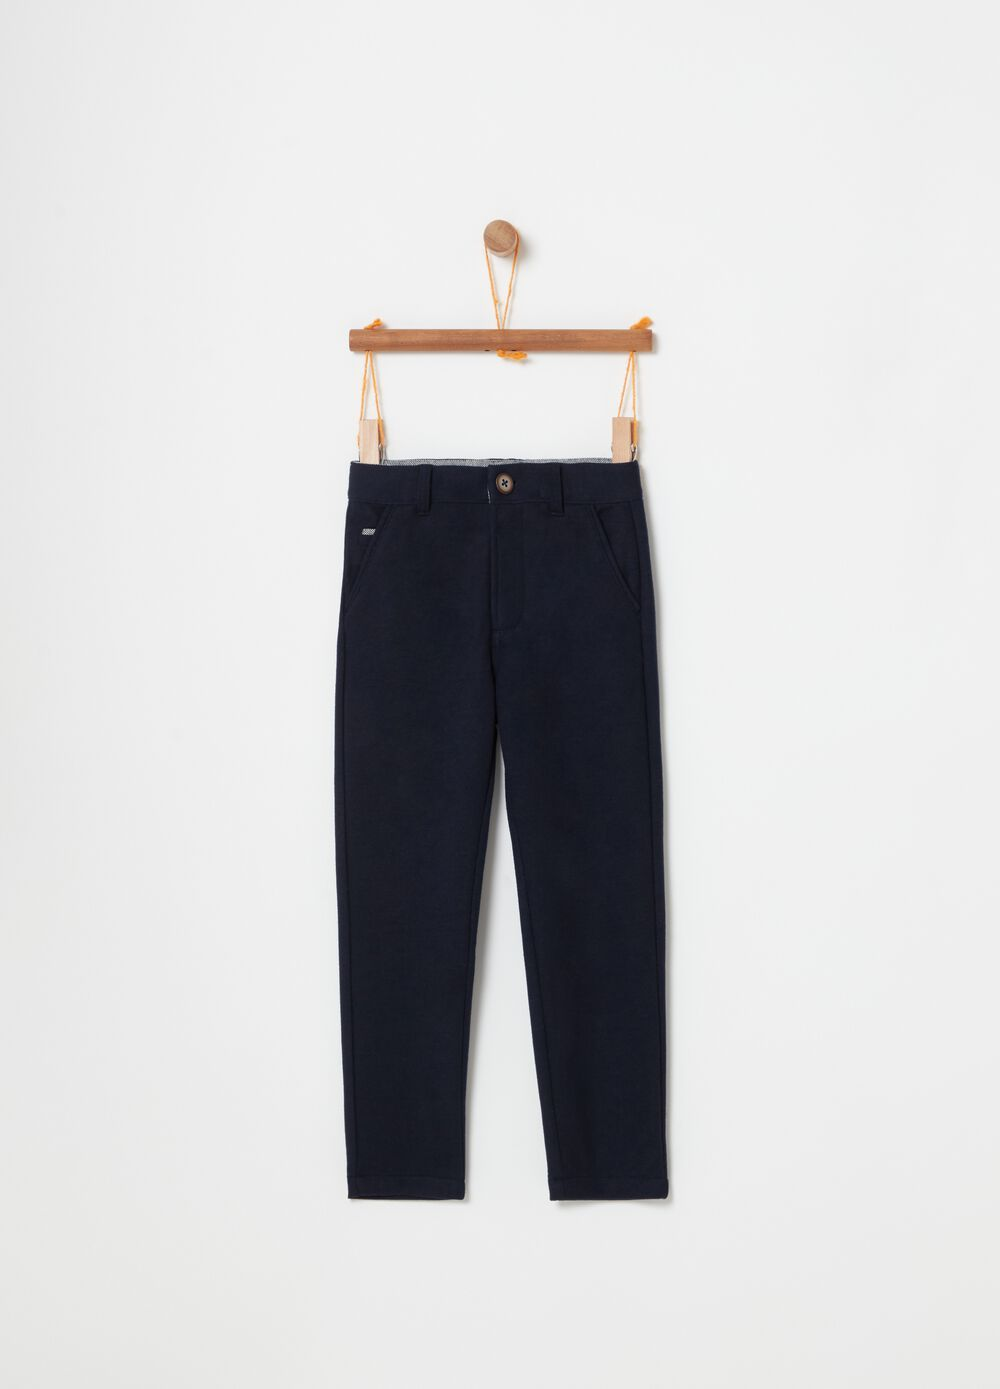 Cotton blend trousers with pockets